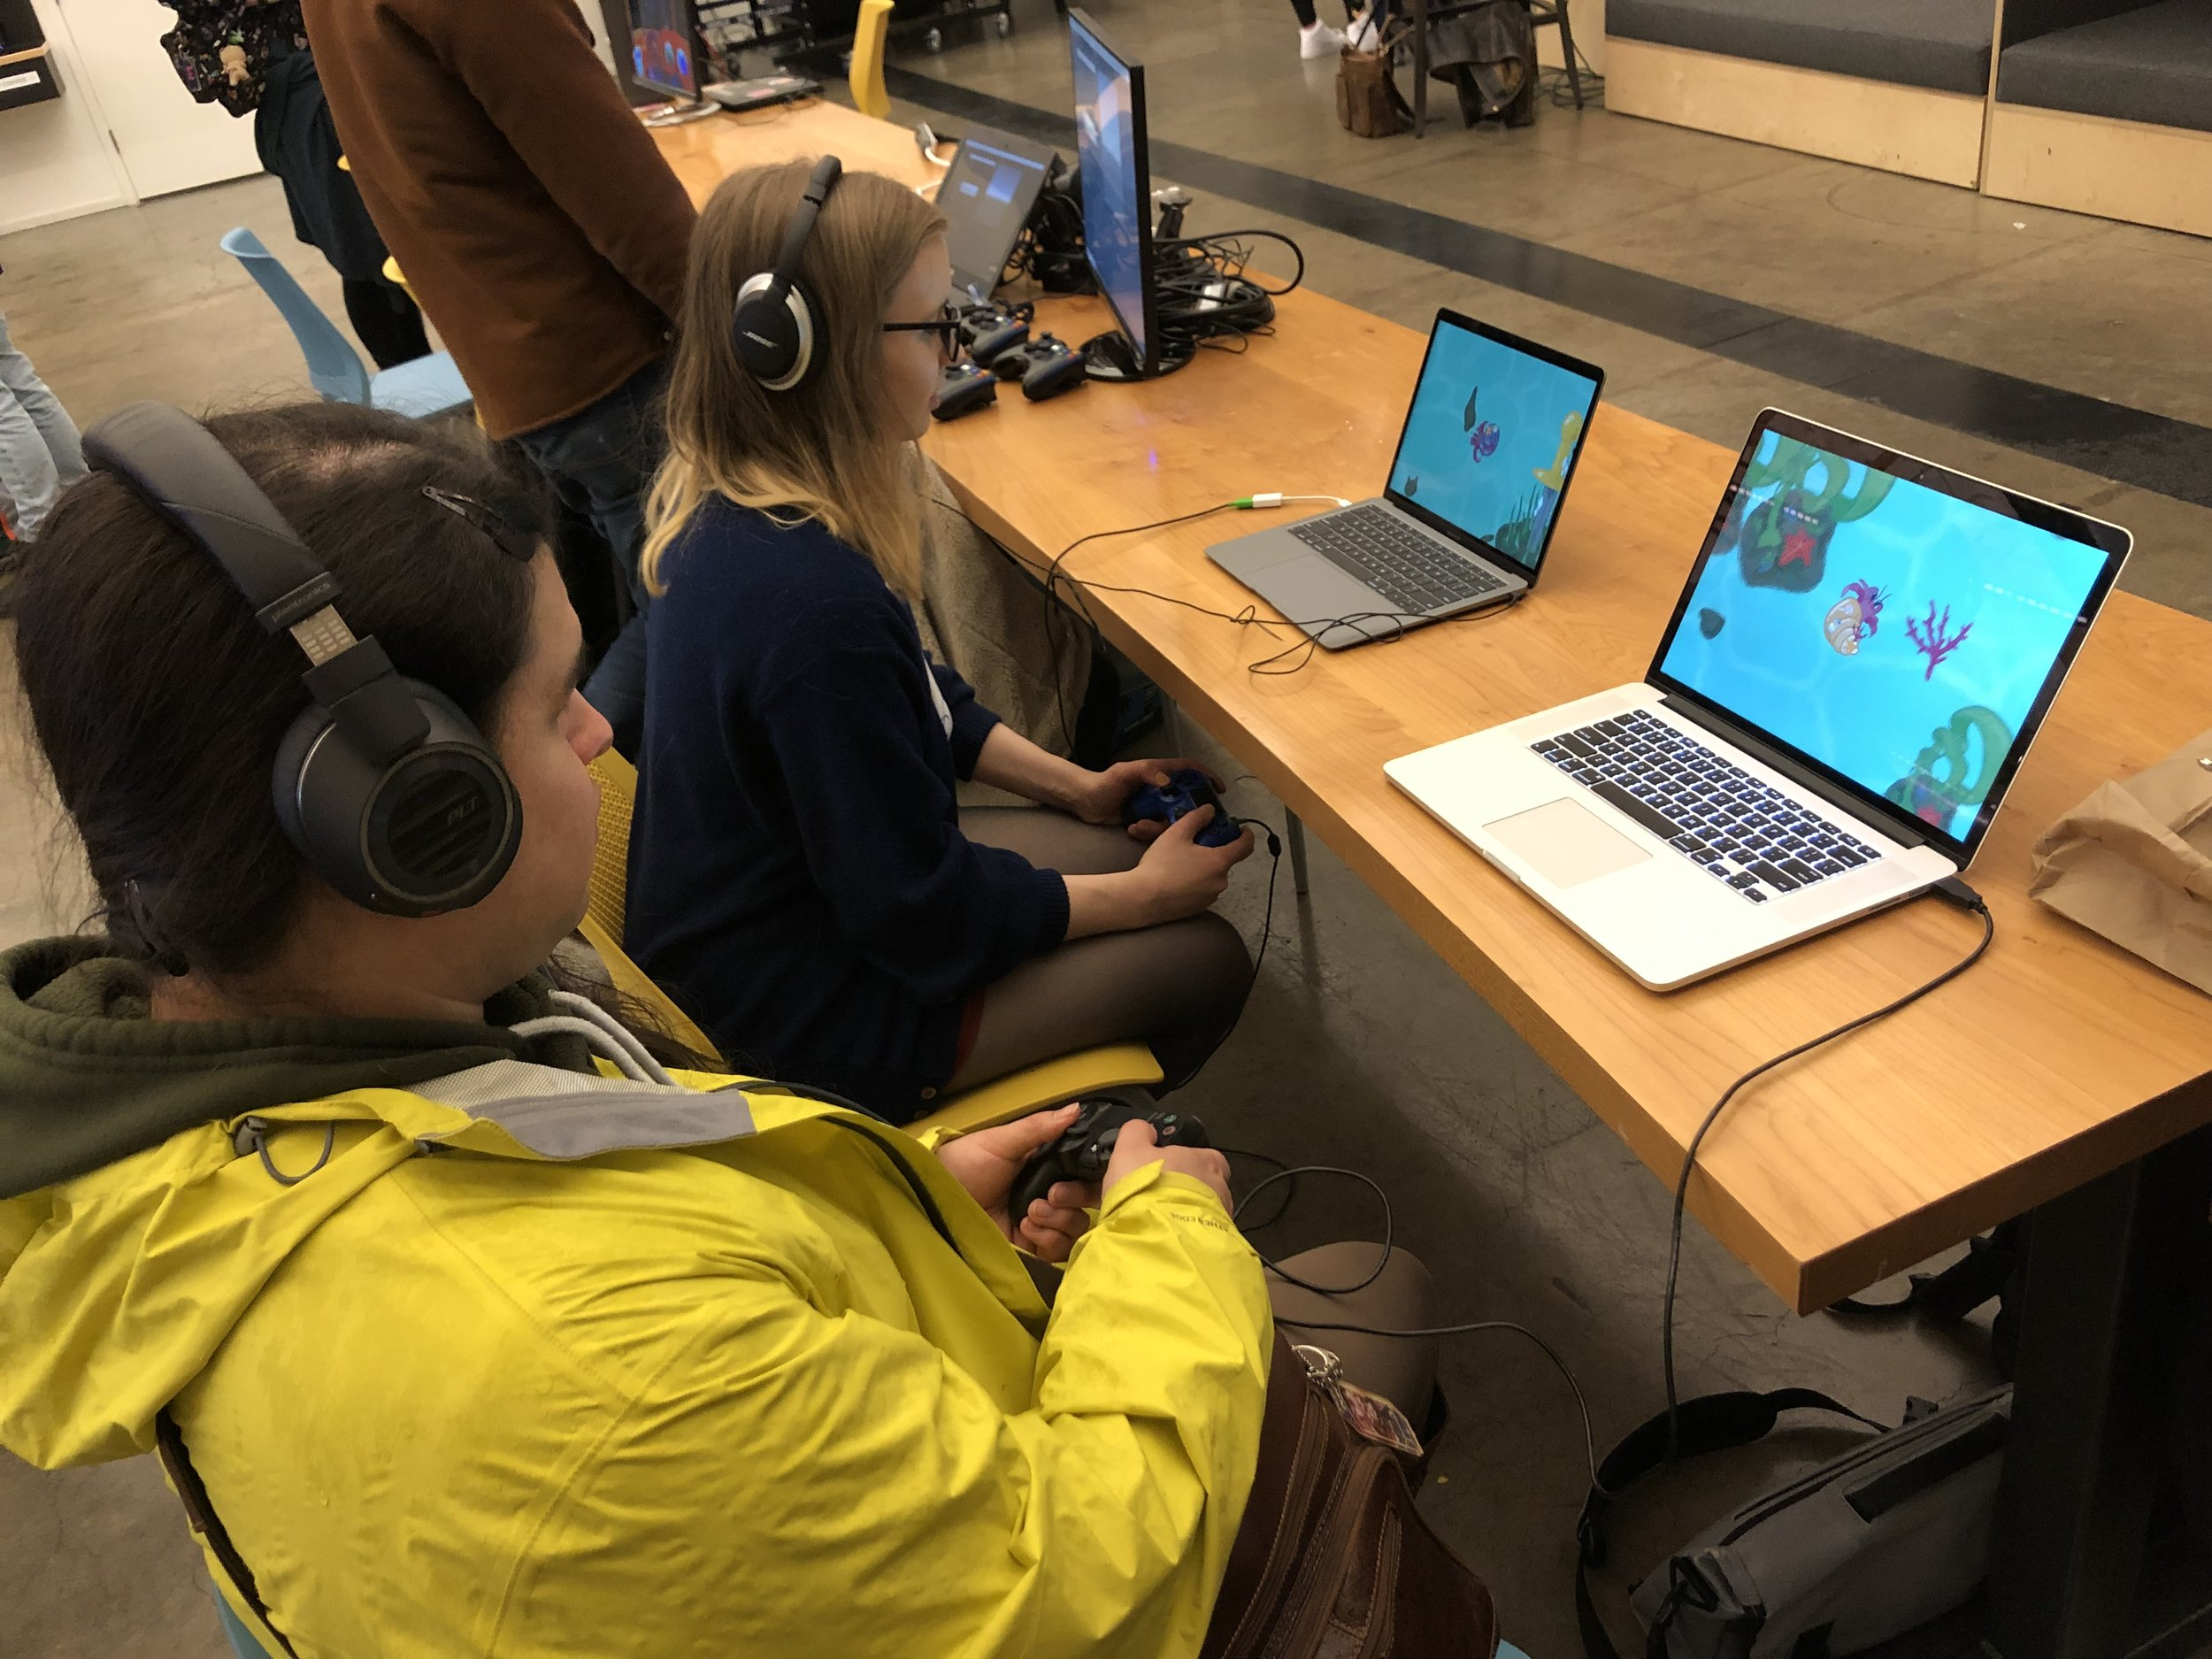 Lots of folks showed up to play our game at the PIGSquad Global Game Jam 2019 Showcase event!